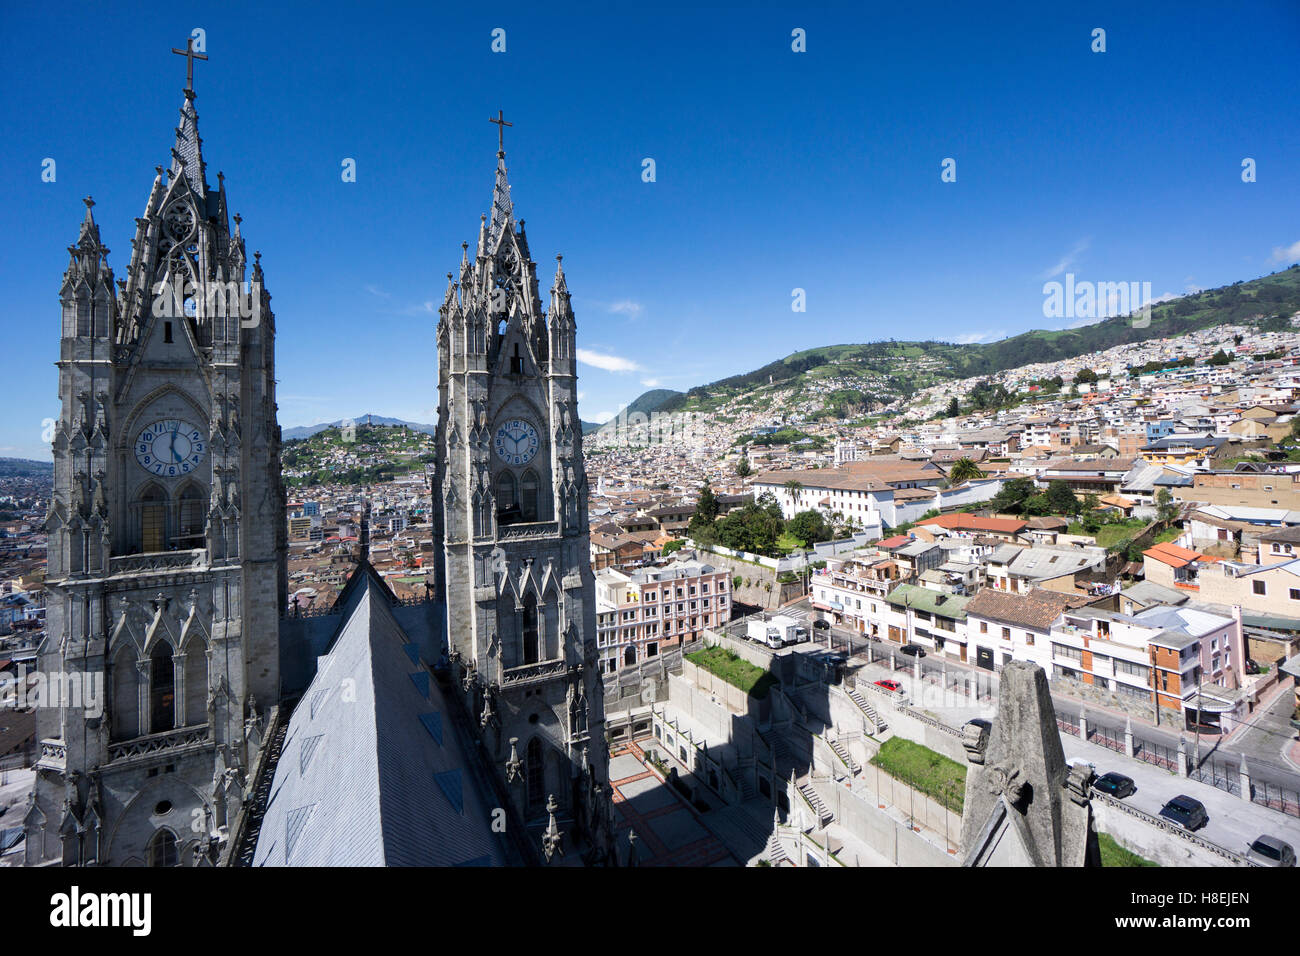 Basilica del Voto Nacional (Basilica of the National Vow), and city view, Quito, Ecuador, South America - Stock Image